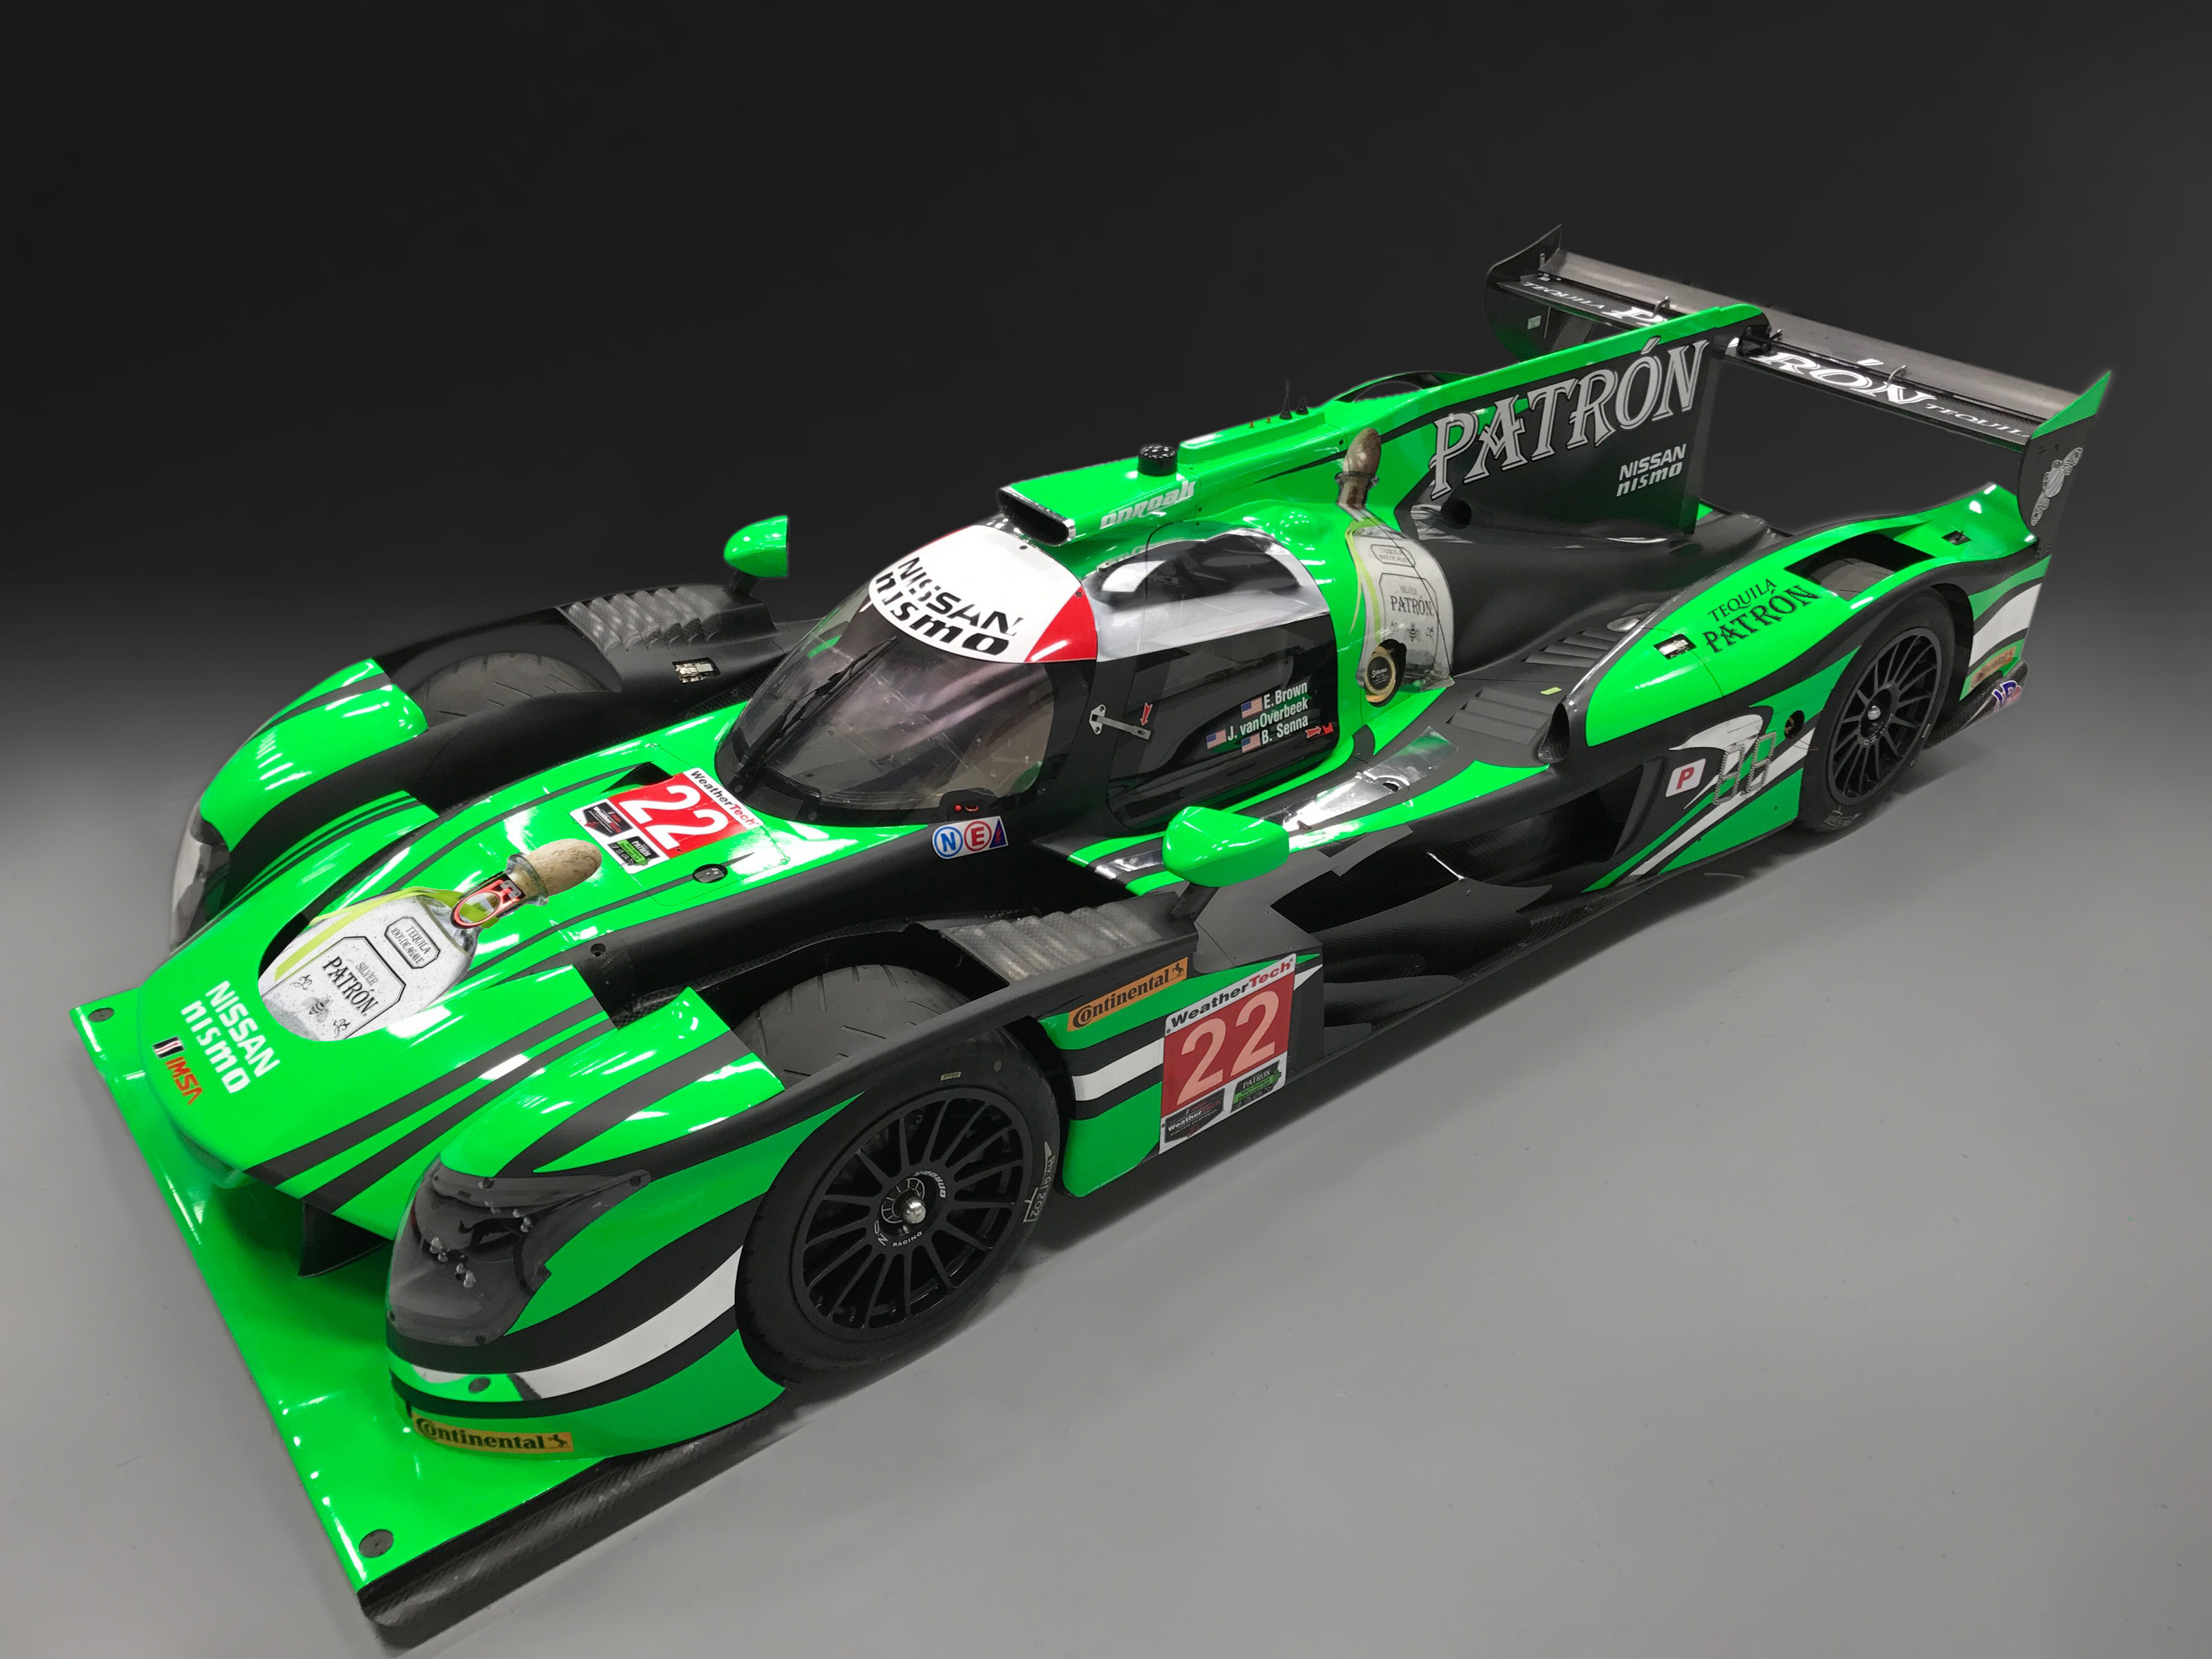 Tequila Patrón ESM Debuts 2017 Liveries for Nissan Onroak DPi Machines